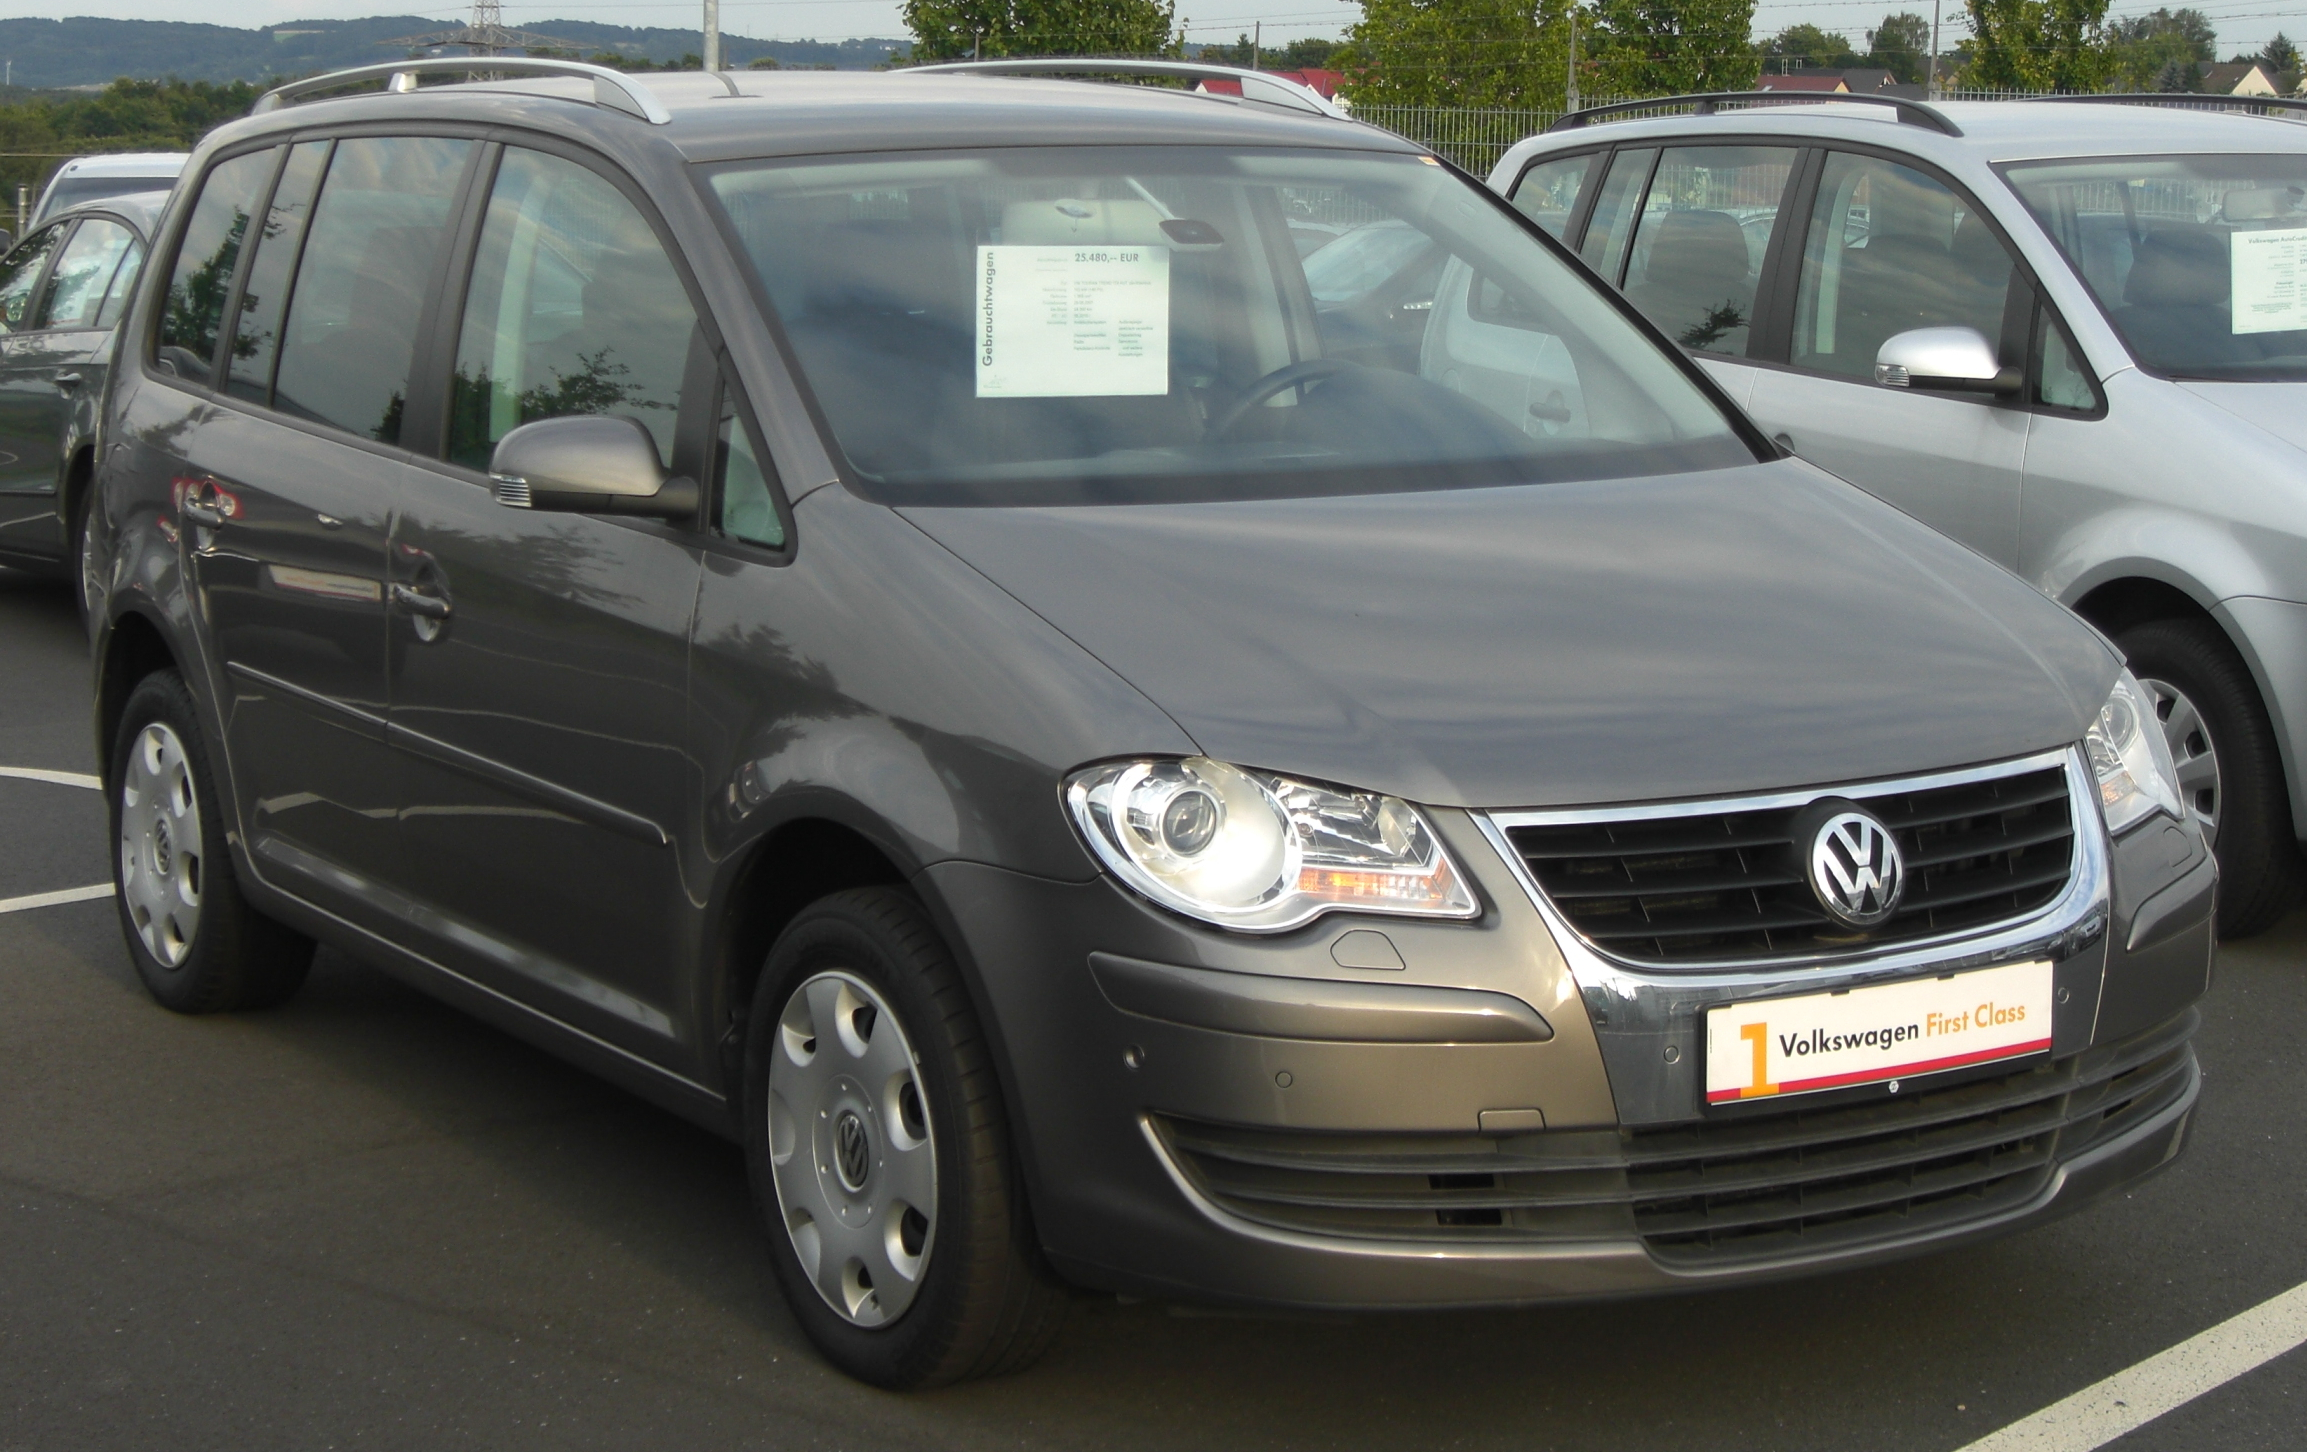 file vw touran 2 0 tdi facelift front jpg wikipedia. Black Bedroom Furniture Sets. Home Design Ideas